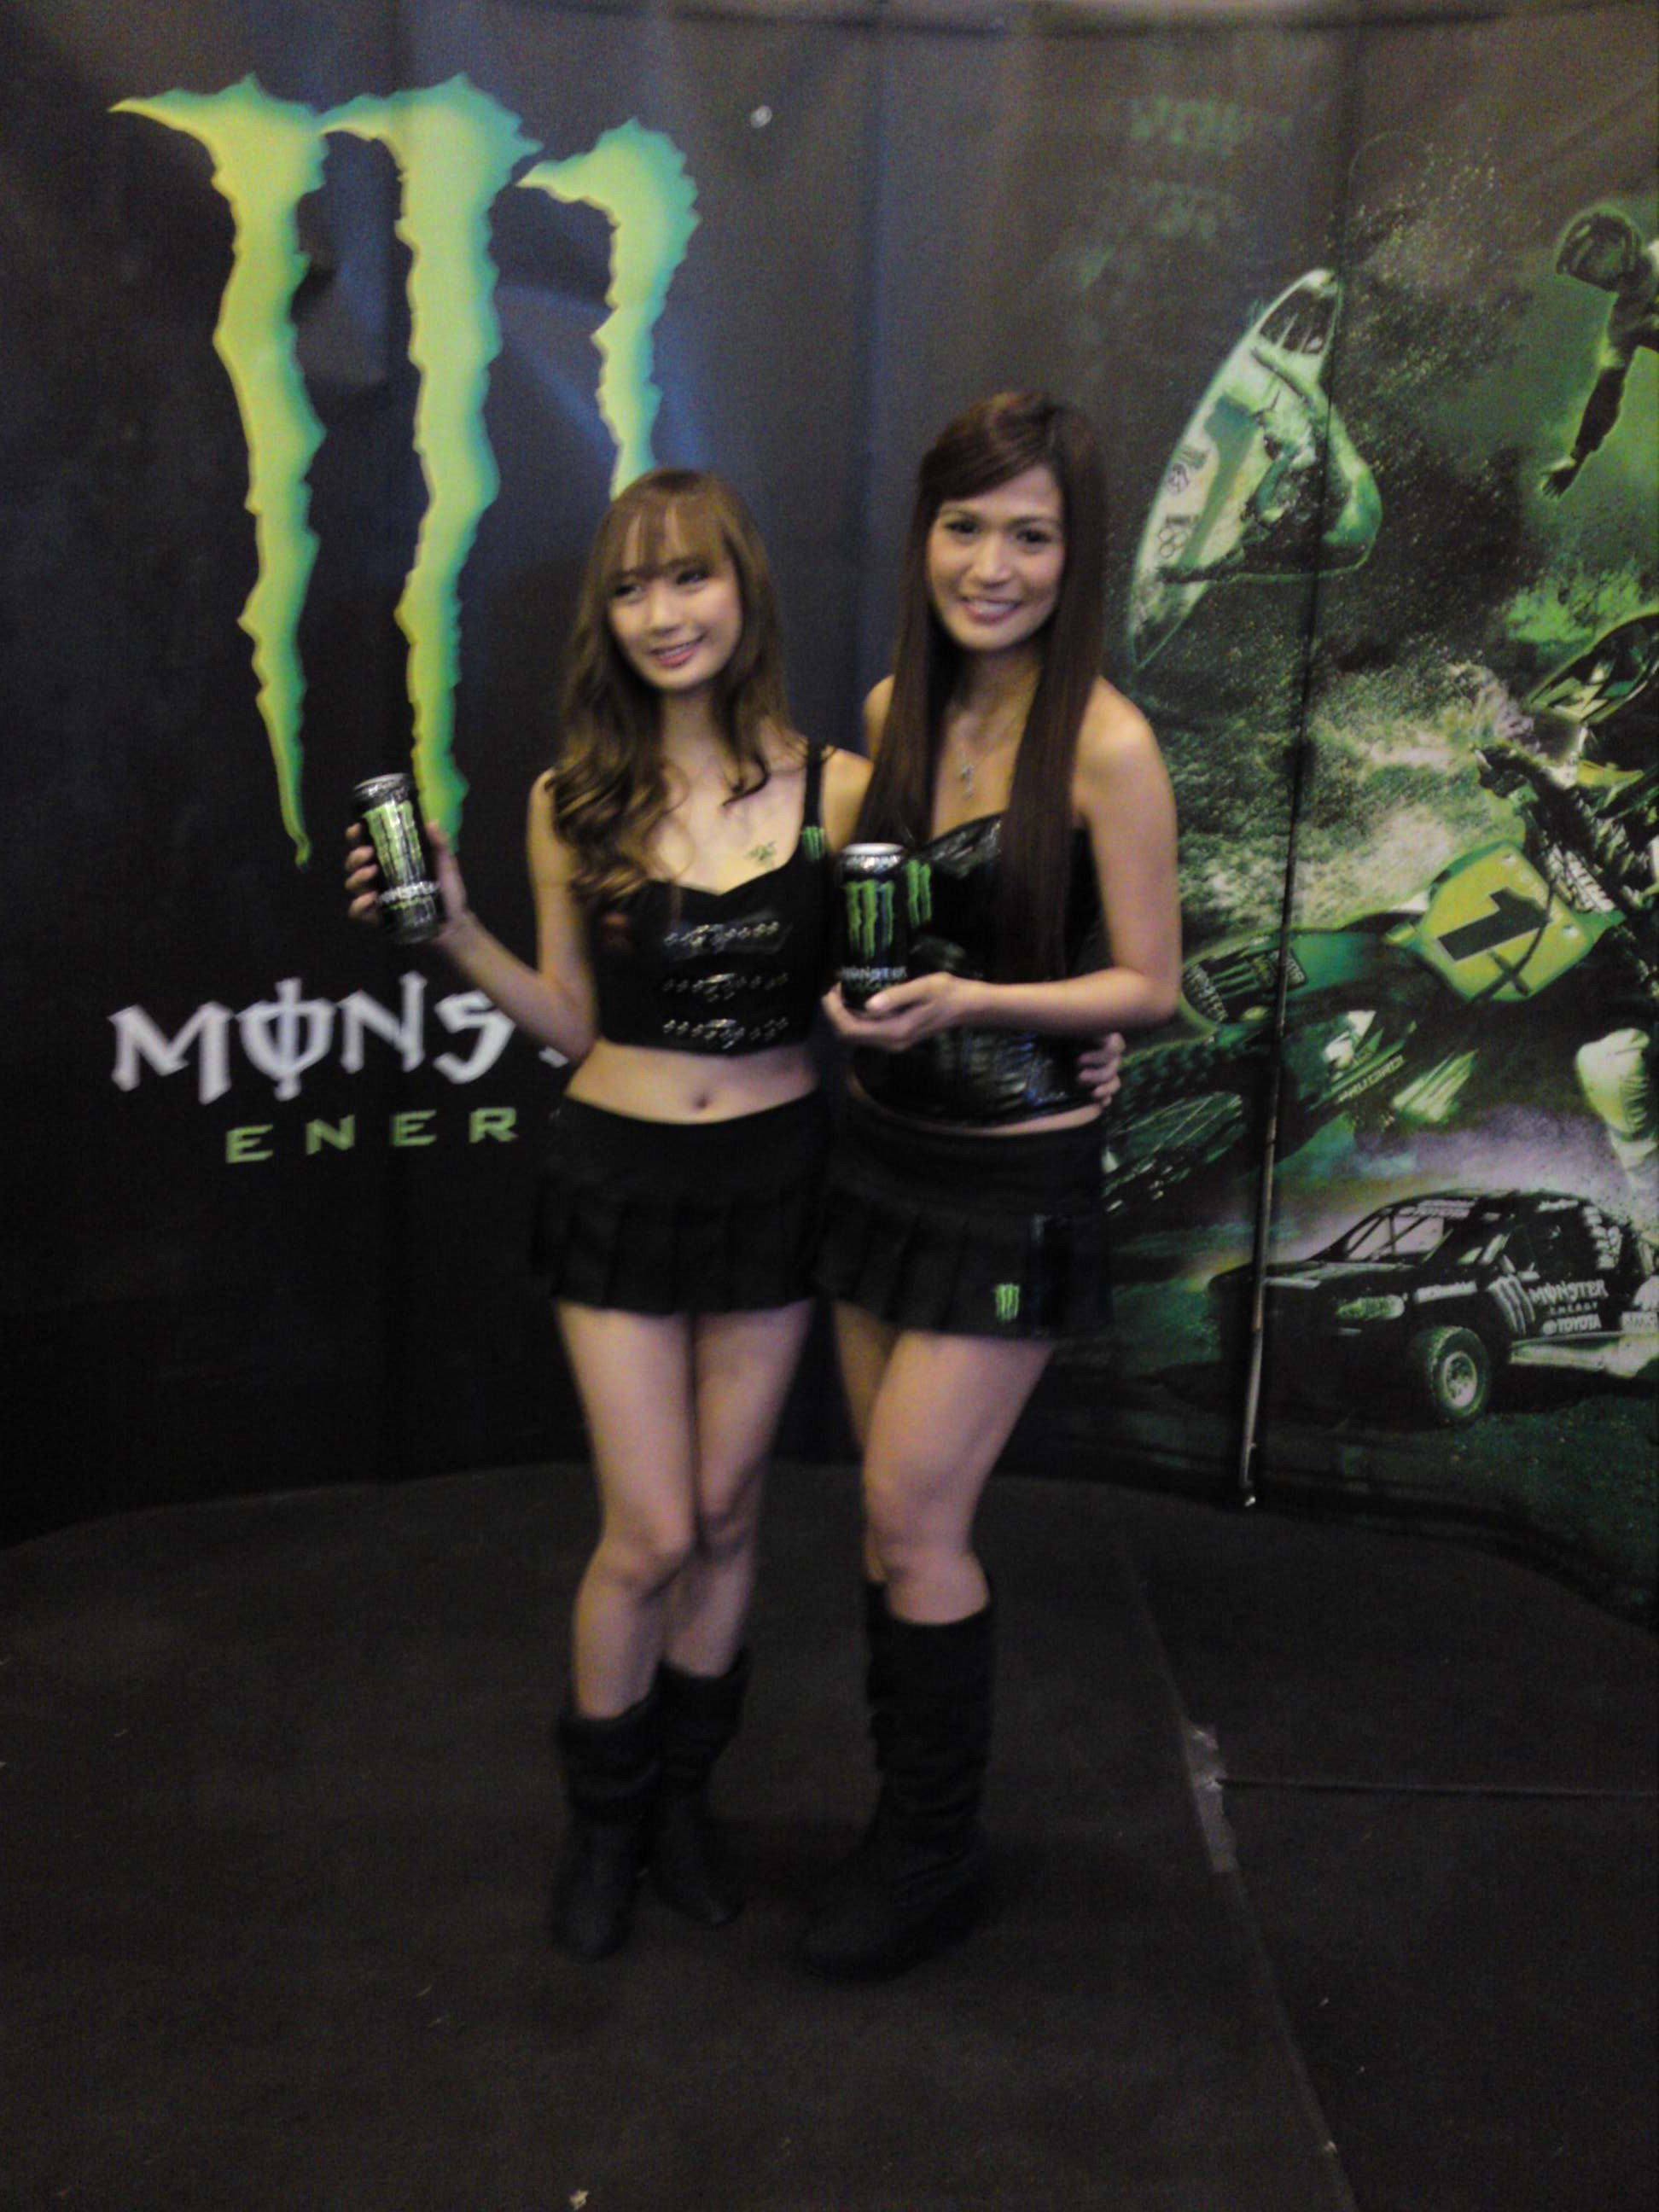 Ill Review Anything Monster Energy Drinks  3Rd World Geeks-9143